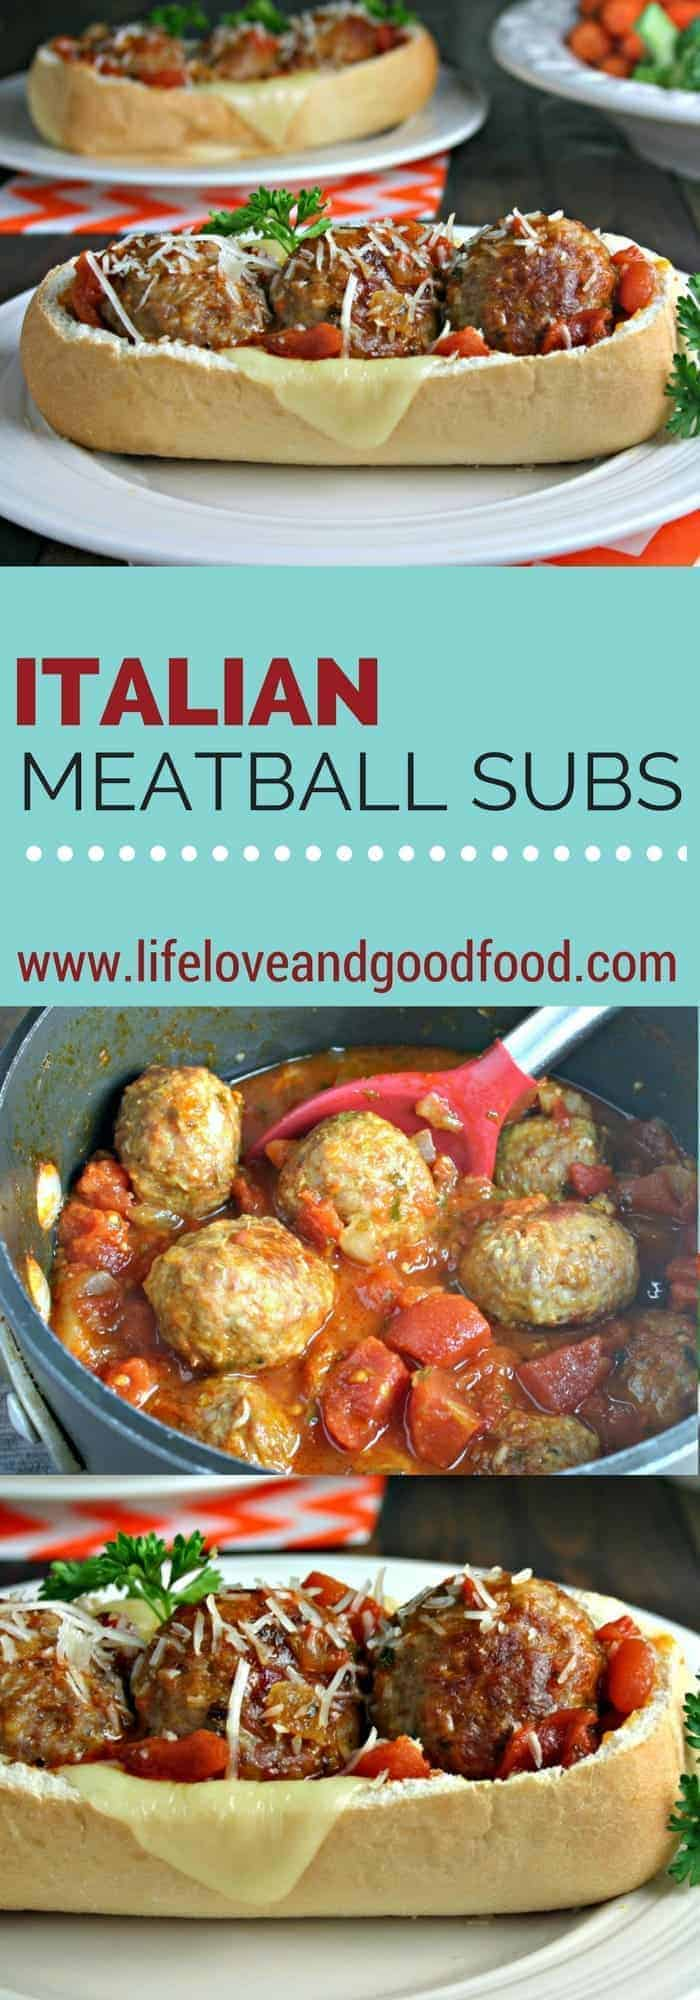 Italian Meatball Subs are perfect for an EASY weeknight dinner and are an equally GREAT idea for your next game day tailgate!